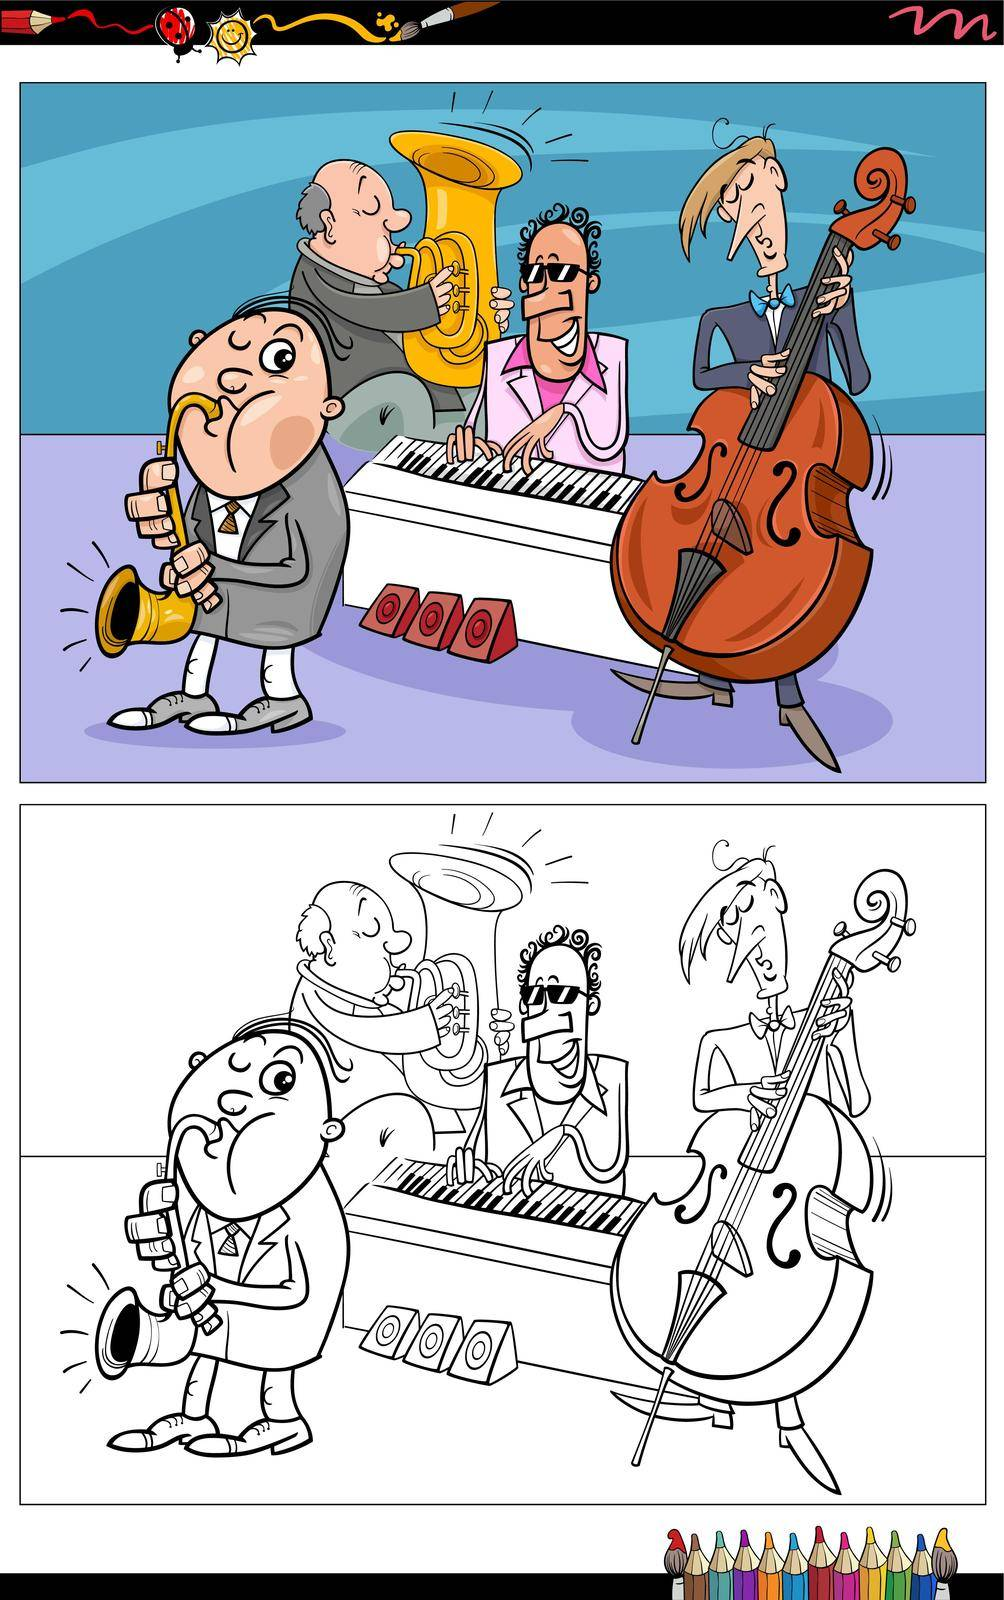 Cartoon illustration of musicians characters band coloring book page